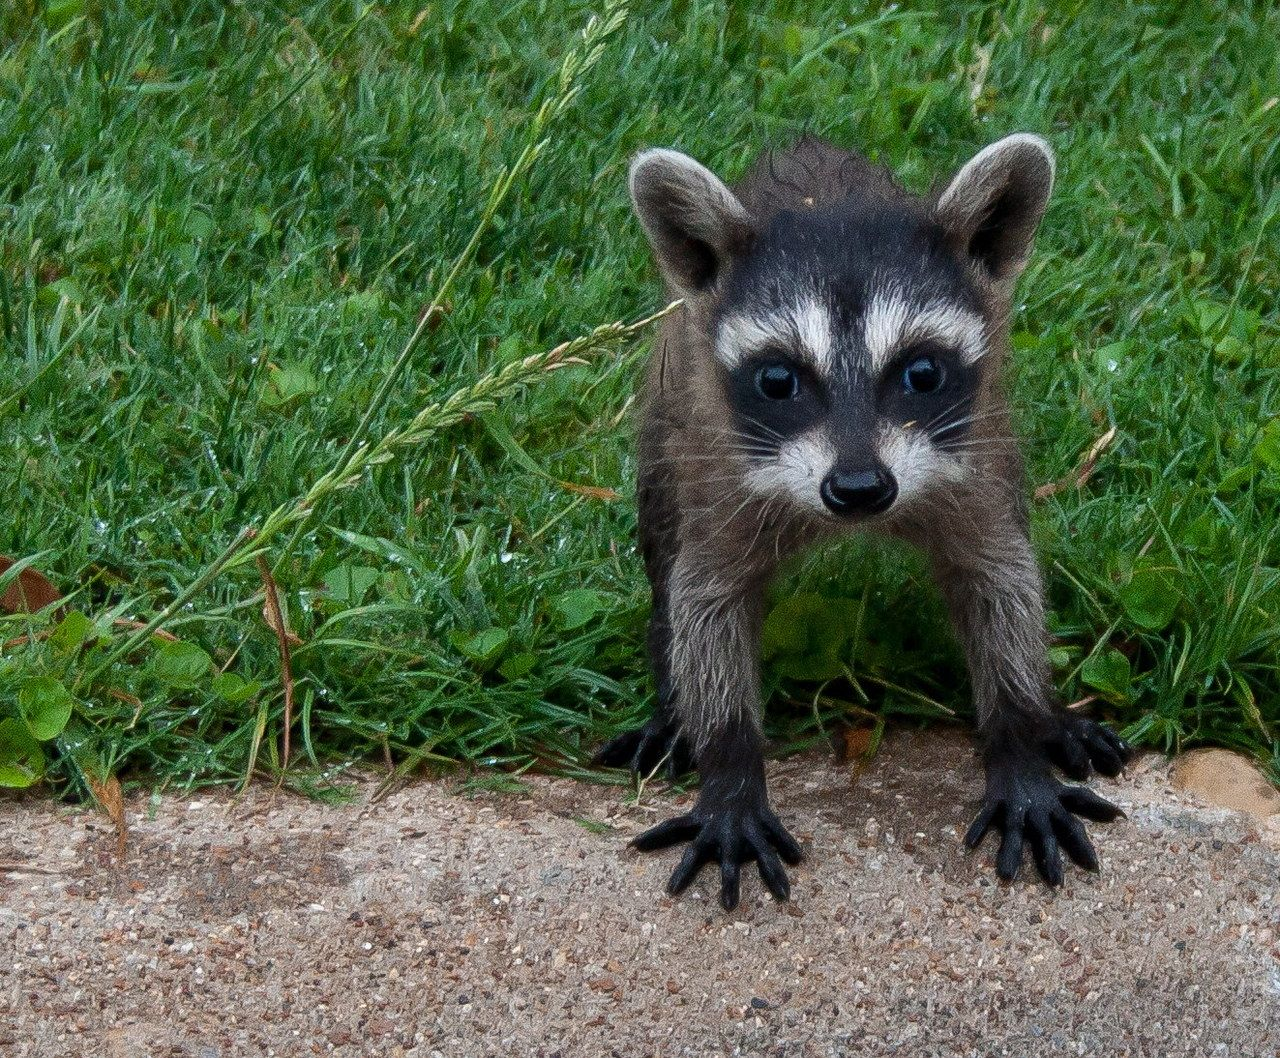 Can you Even? I Totally Can't! | Animal and Raccoons